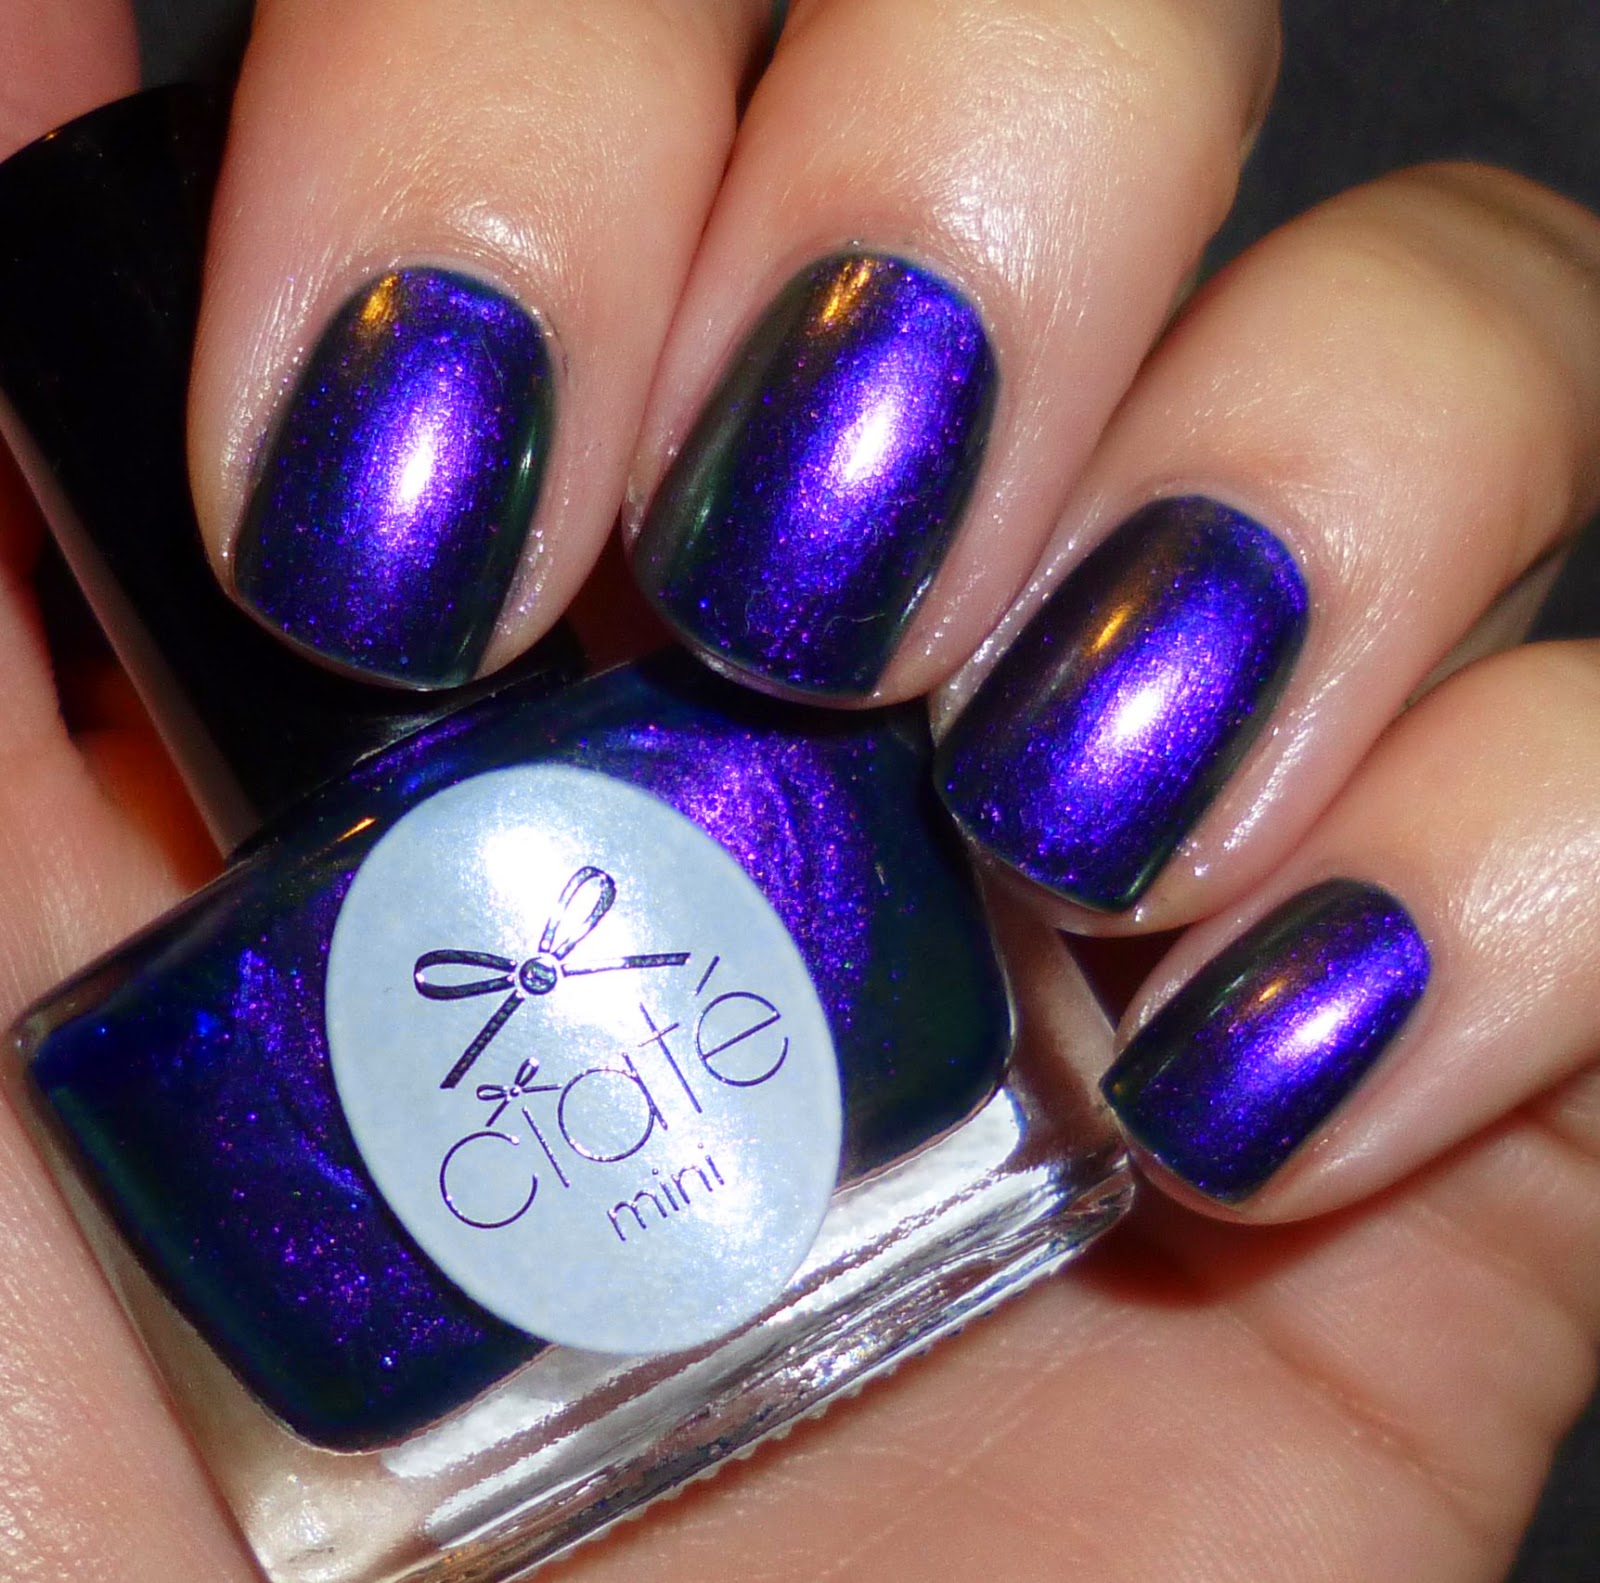 Ciate Starlet: Lou Is Perfectly Polished: Swatch: Ciate: Starlet